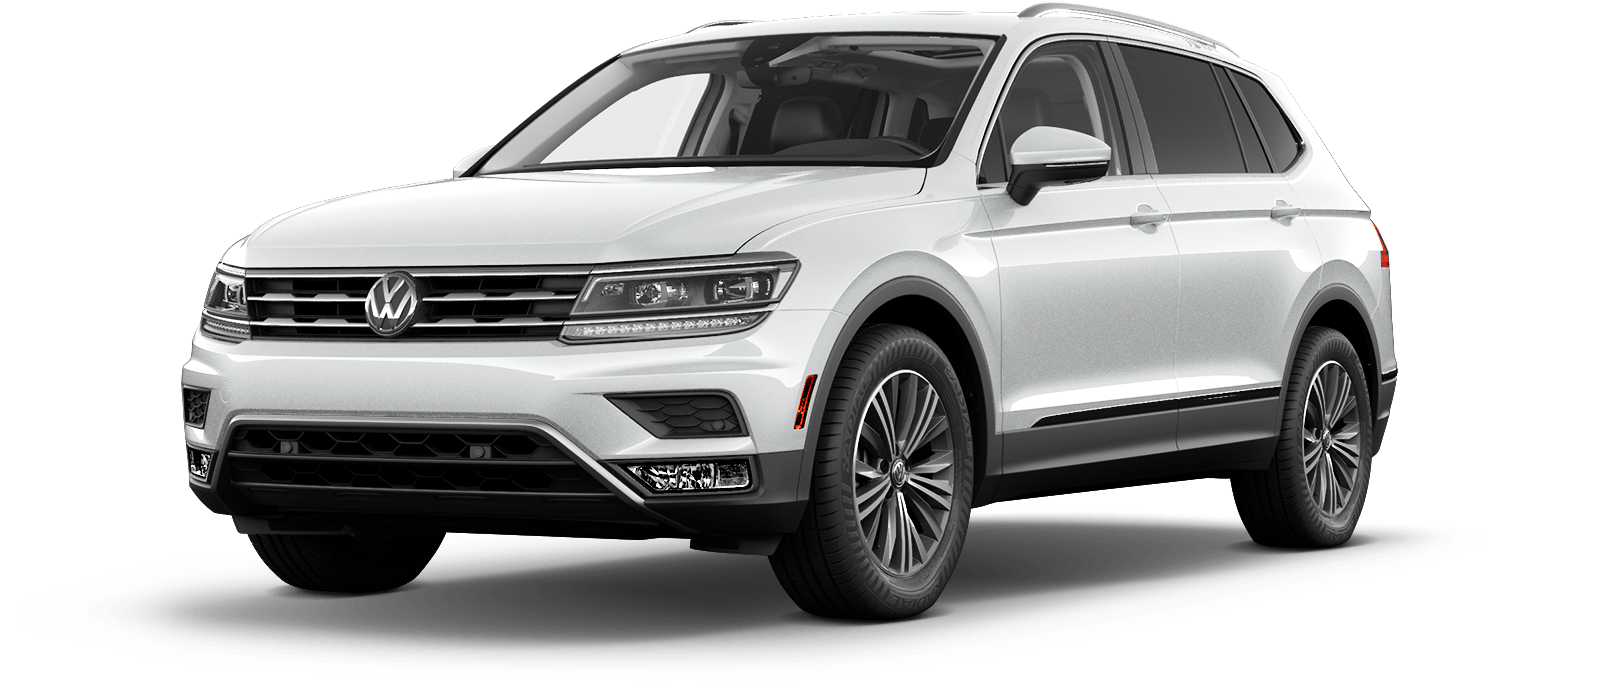 2018 volkswagen tiguan suv color options. Black Bedroom Furniture Sets. Home Design Ideas